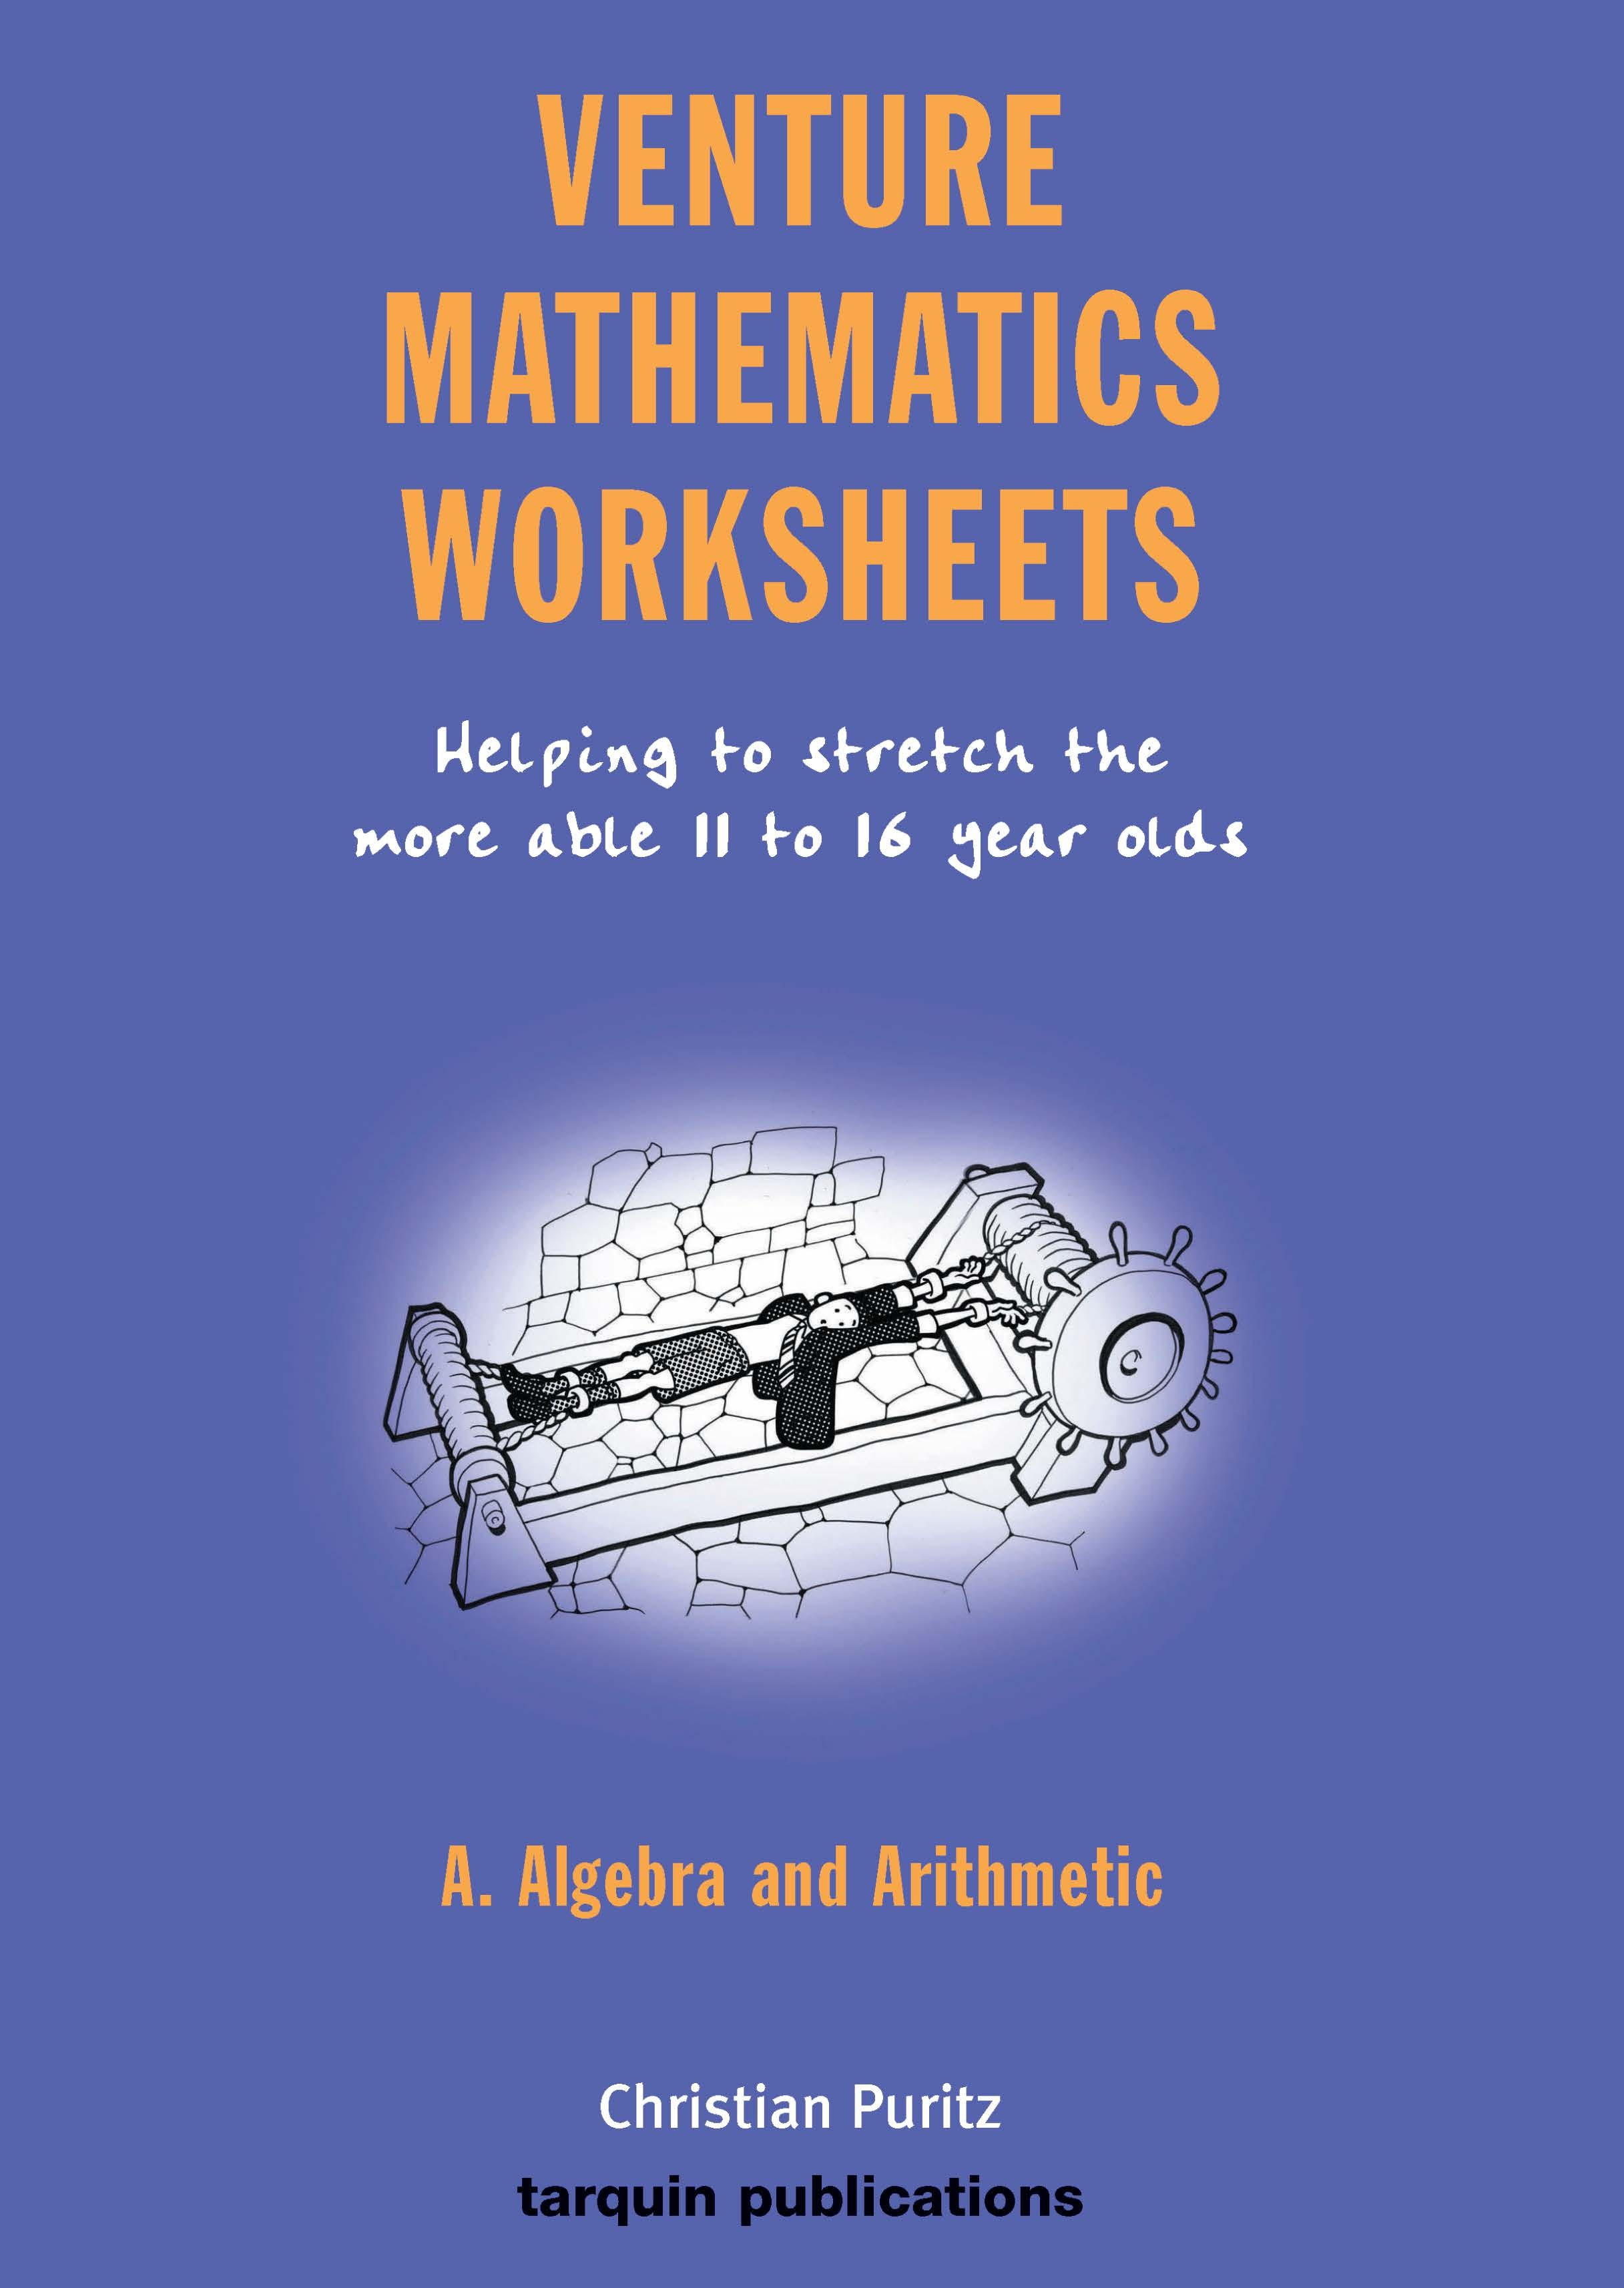 Venture Mathematics Worksheets - Algebra and Arithmetic: Algebra and Arithmetic Bk. A